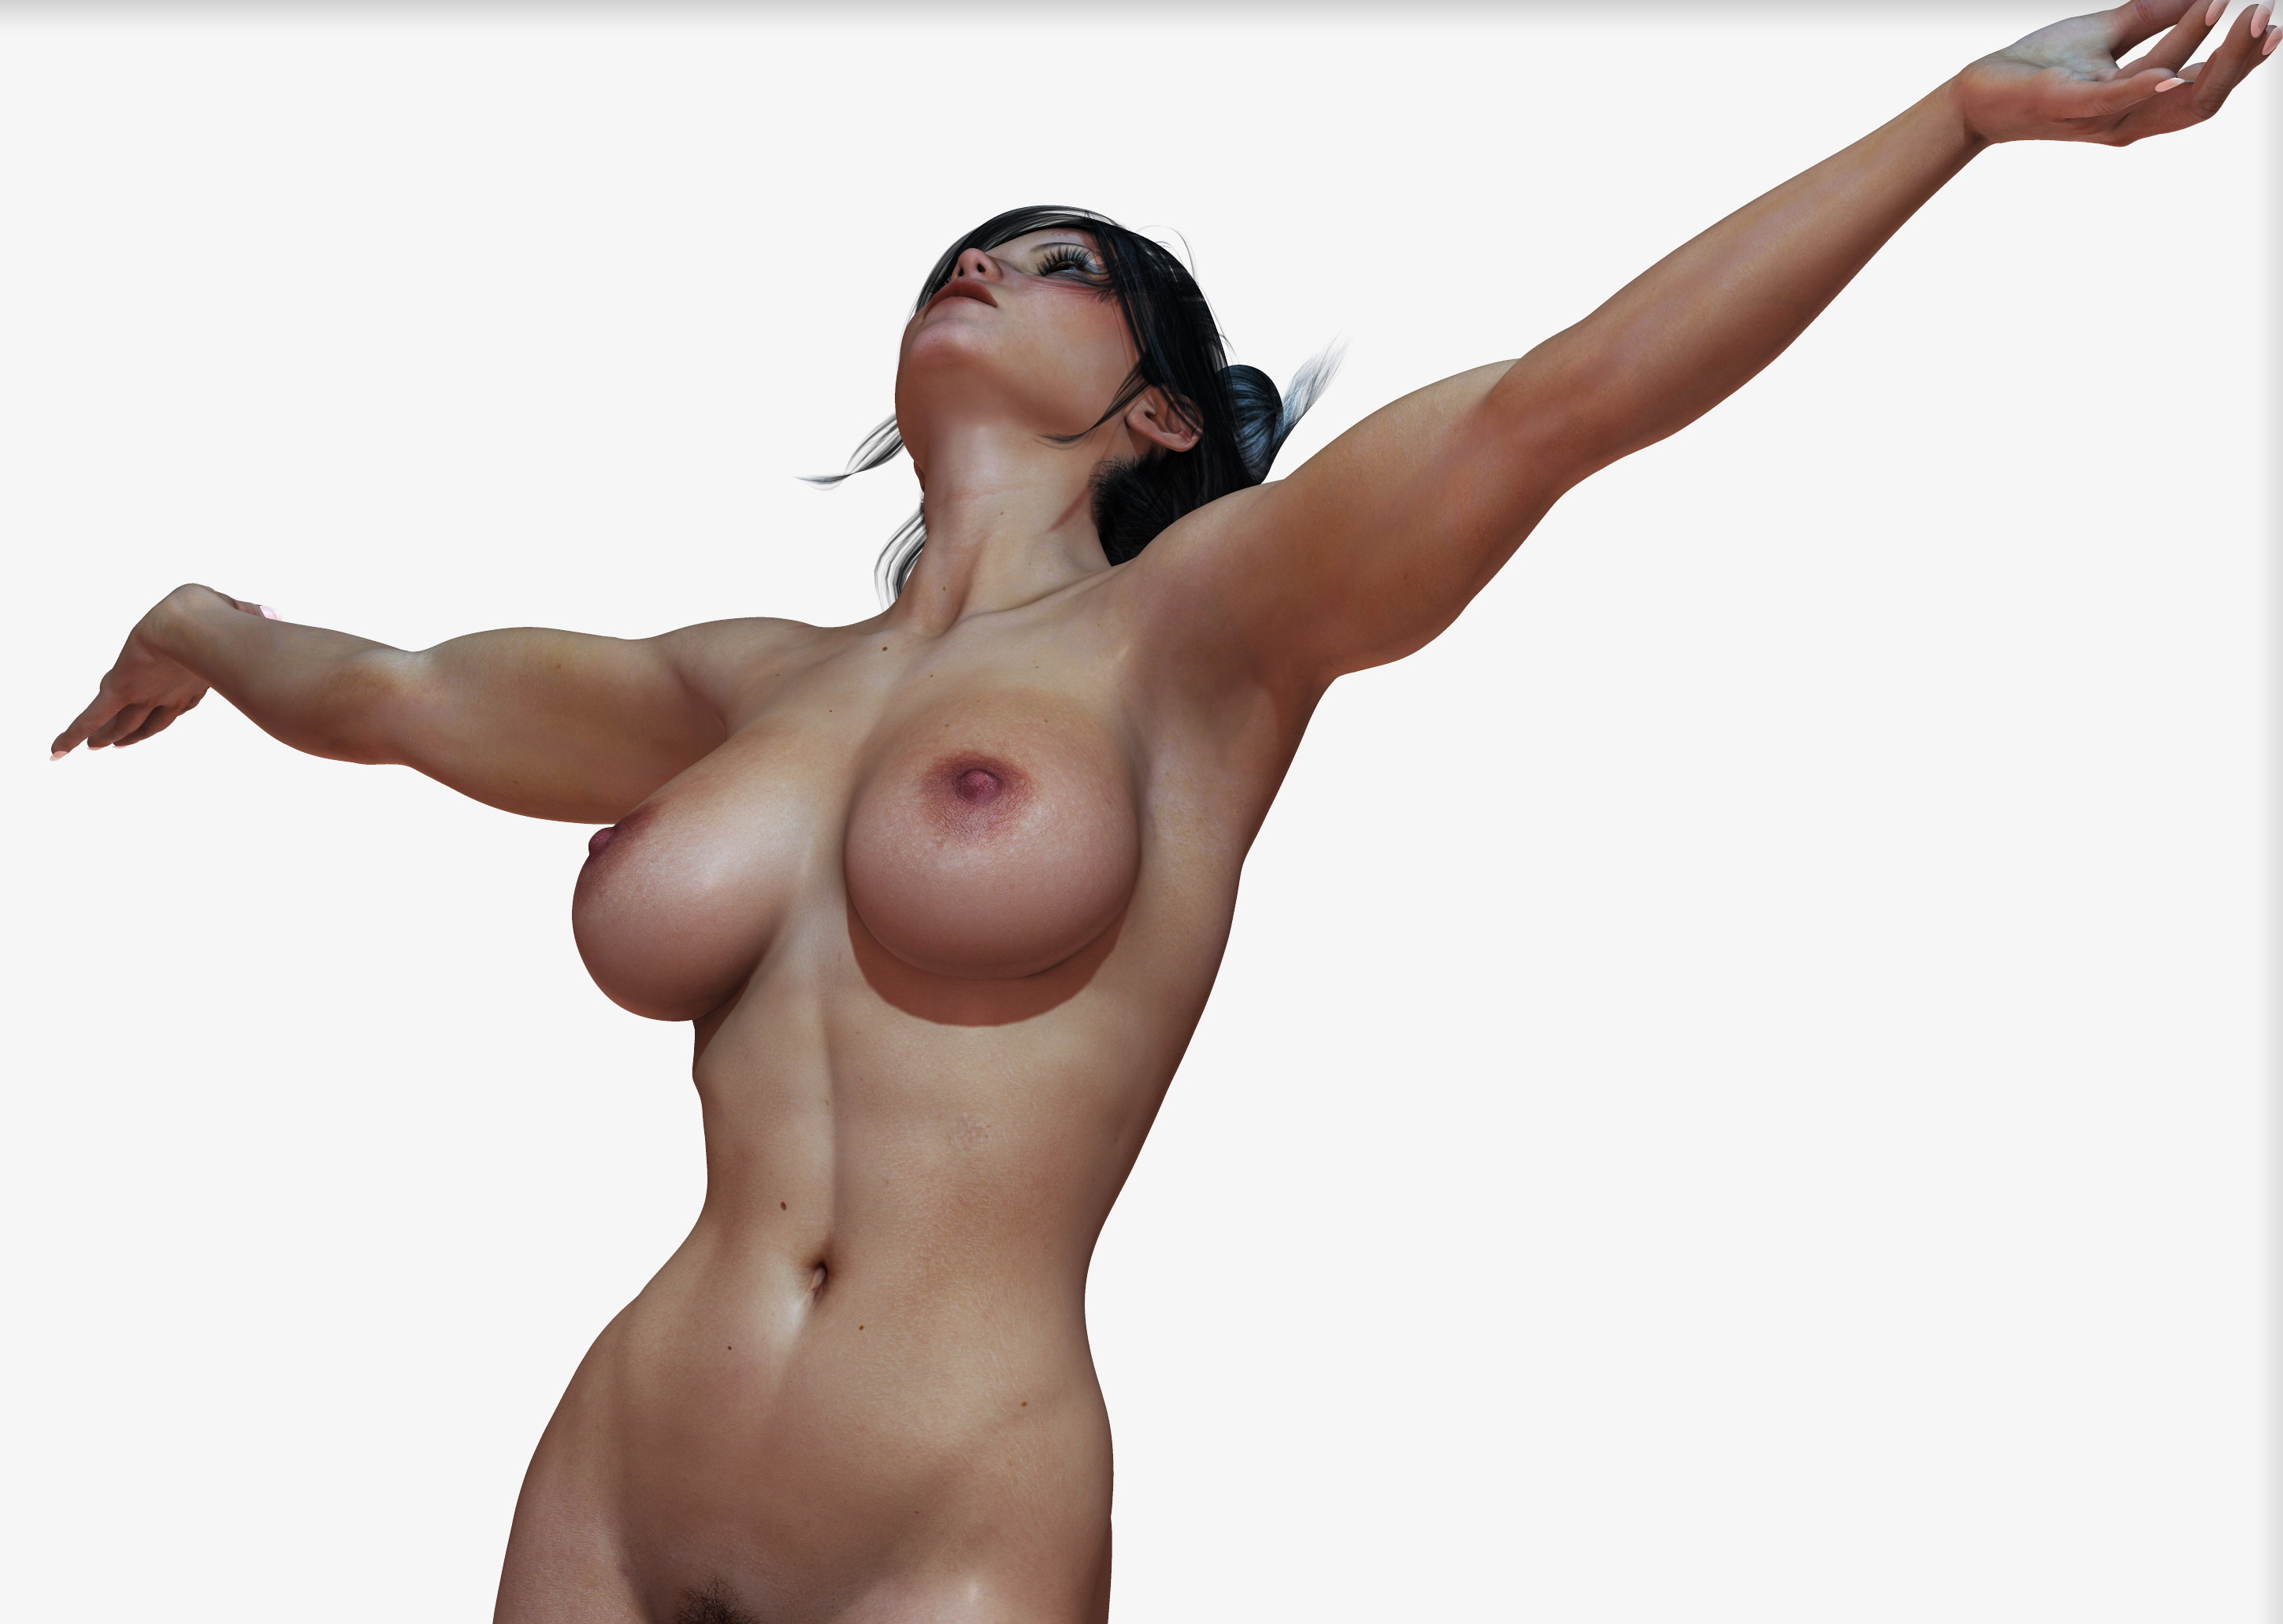 Nude women animation, wife in car video